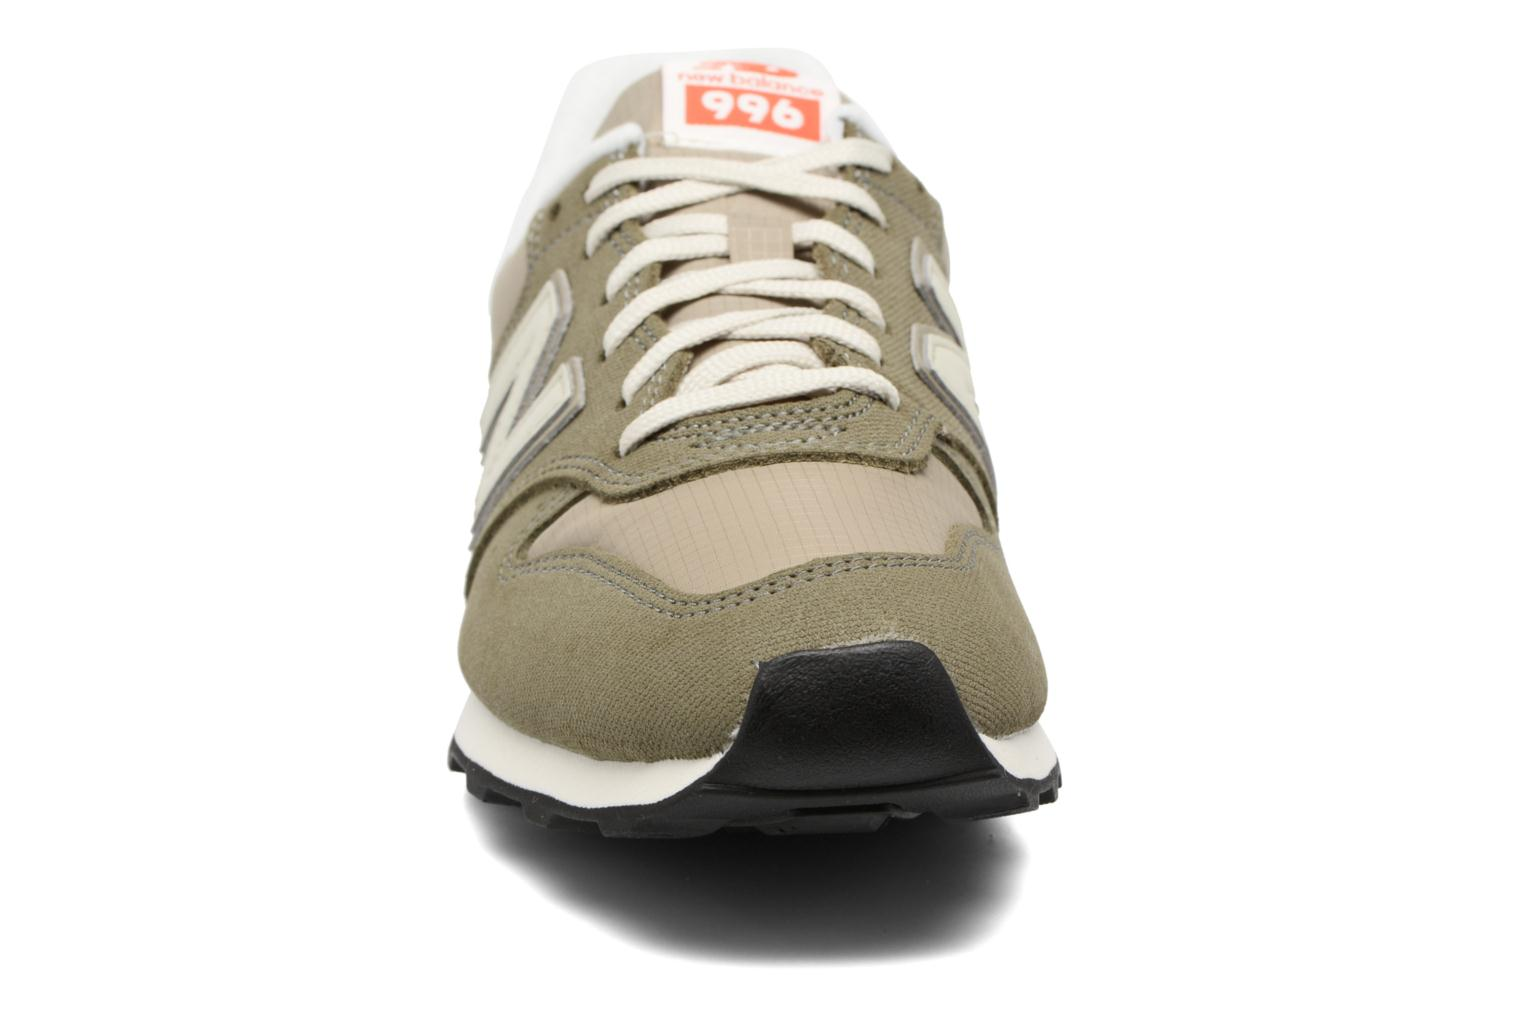 WR996 D Vcb Light Khaki